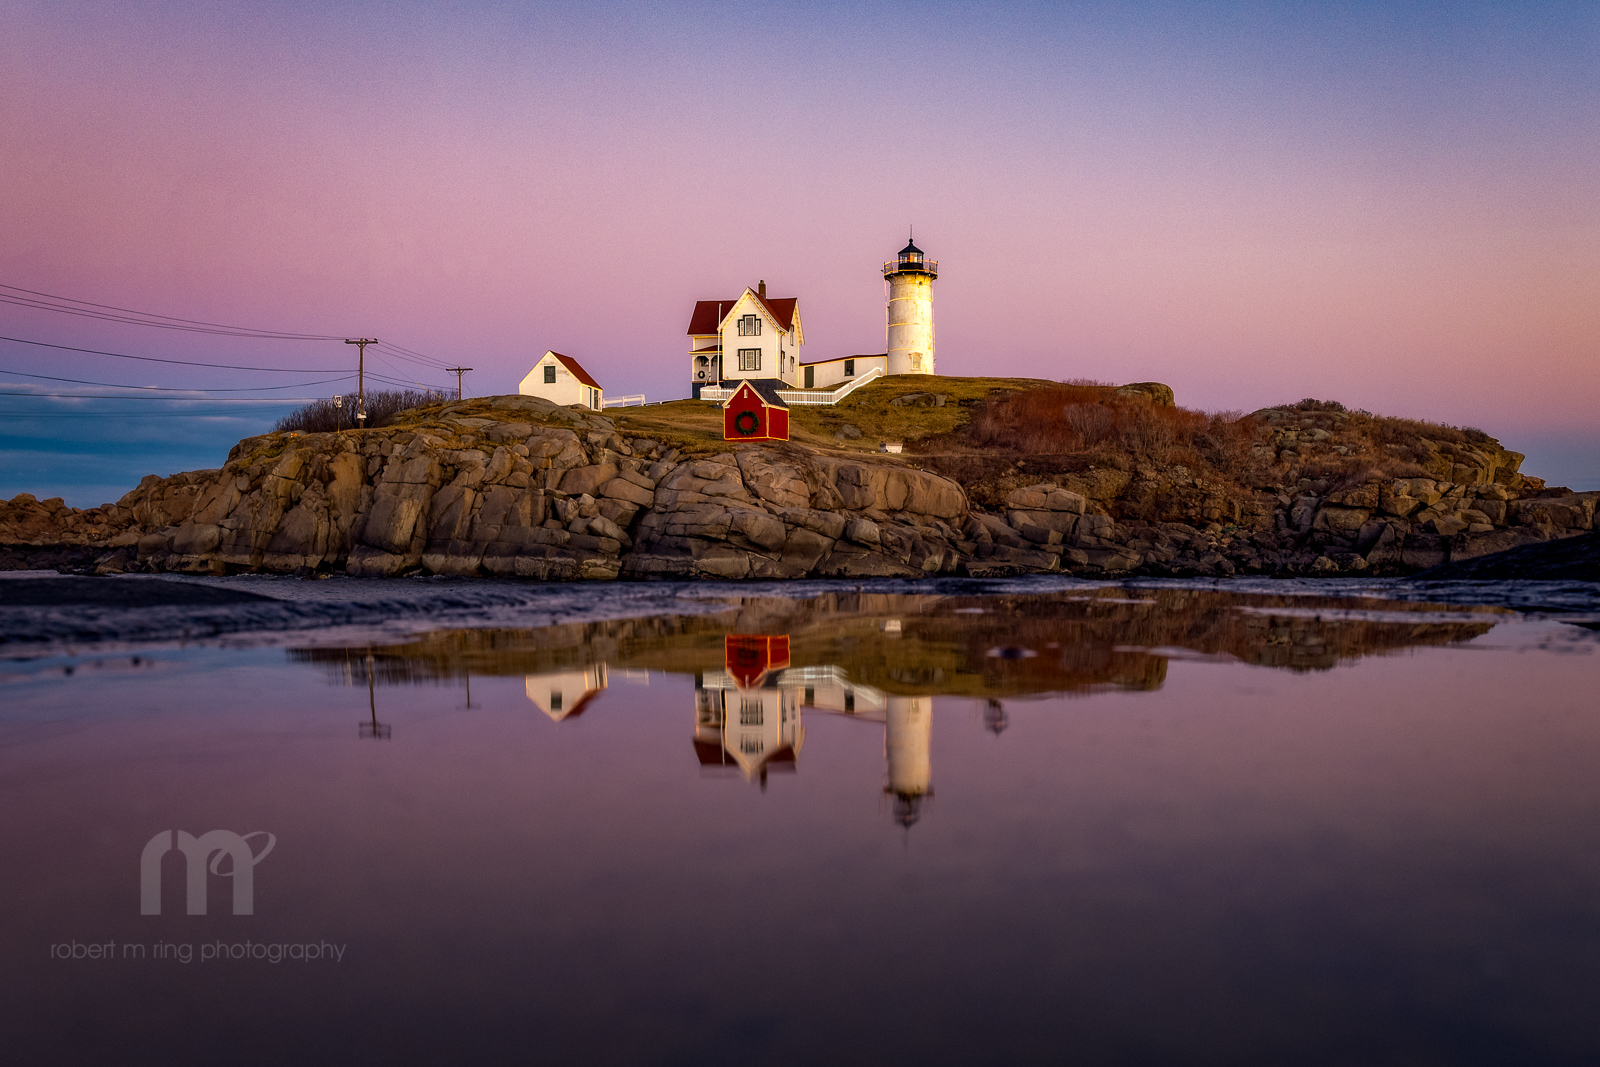 Maine, Nubble Light, maine, New England, coast, lighthouse, magenta, sky, photo